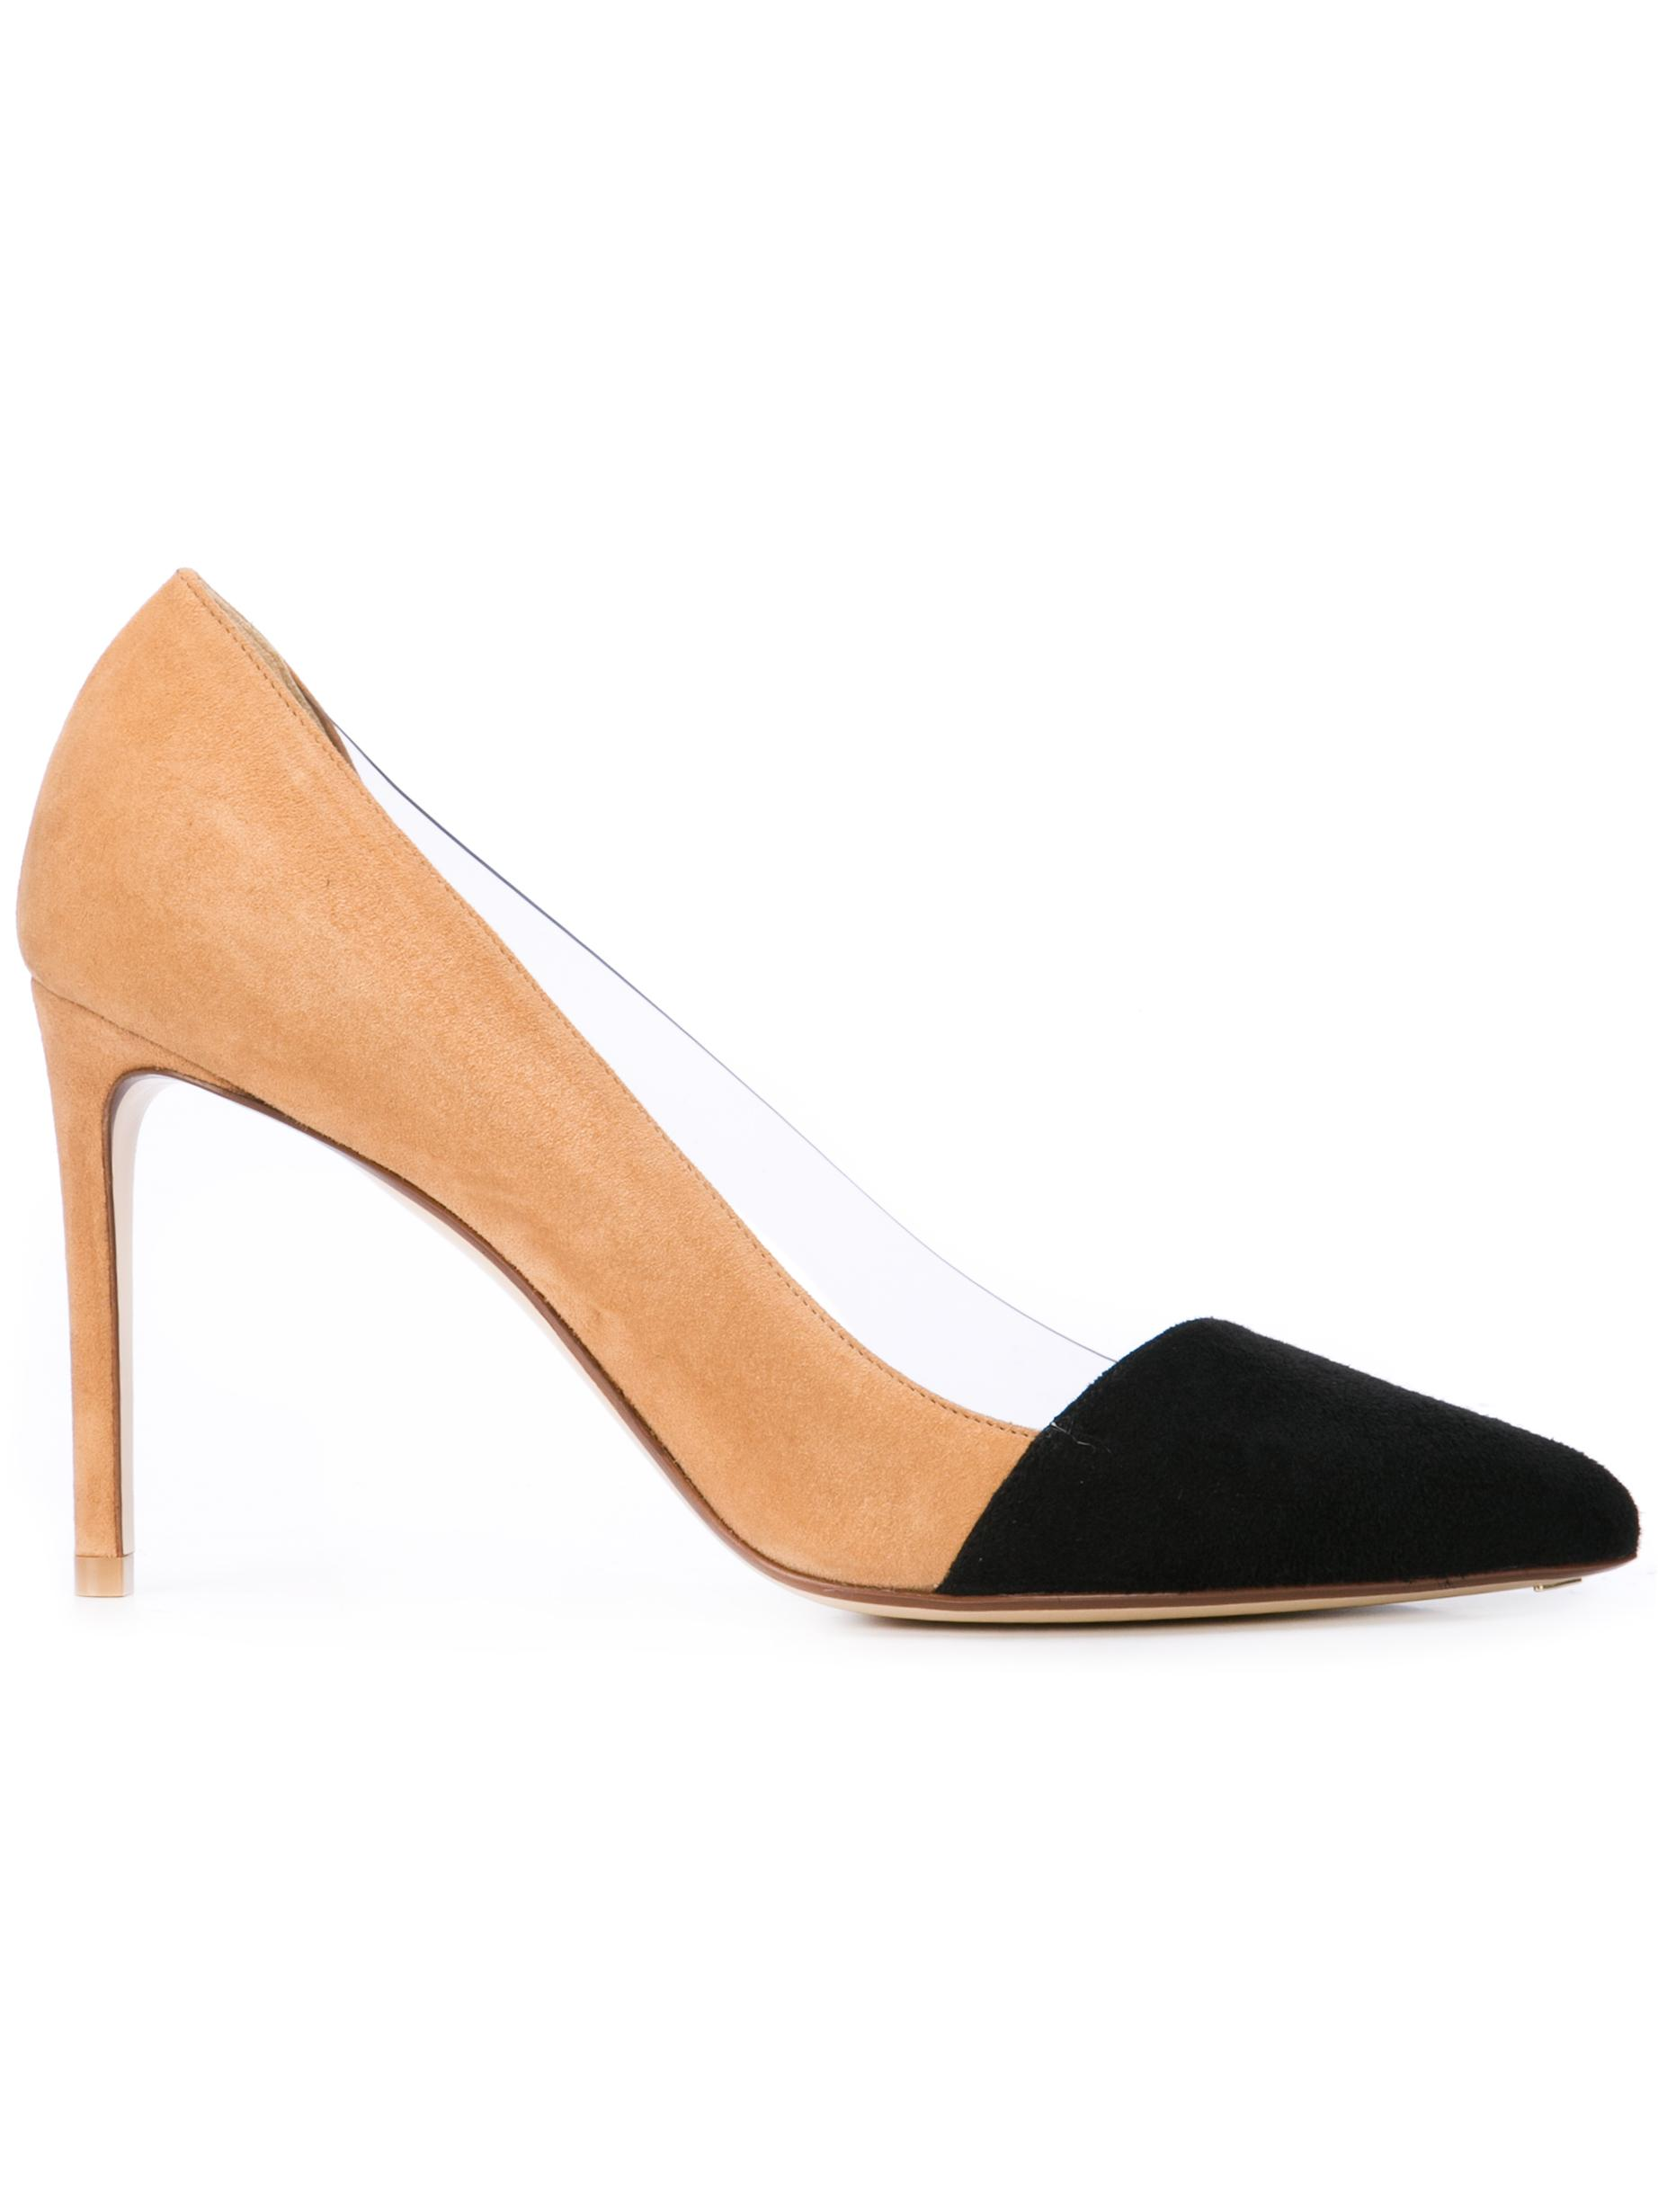 Bi Color Cap Toe 90mm Suede Pvc Pump Item # R1P531-286